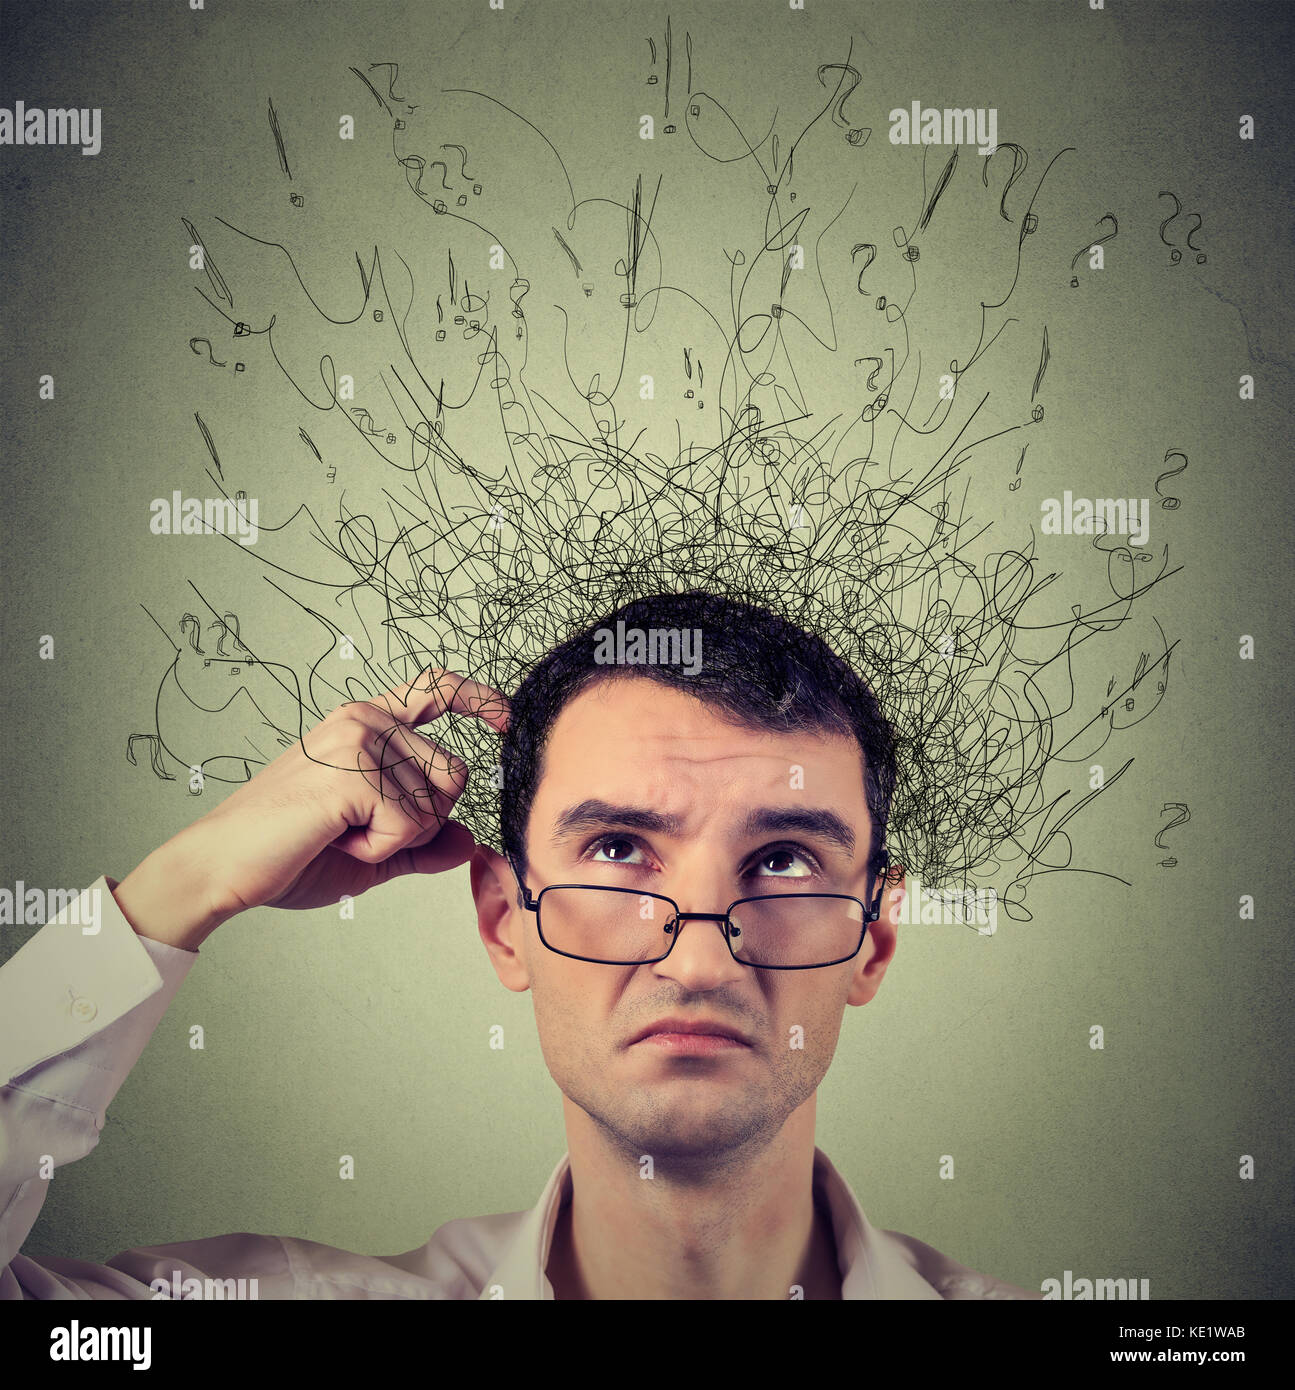 Closeup portrait young man scratching head, thinking daydreaming with brain melting into many lines question marks - Stock Image